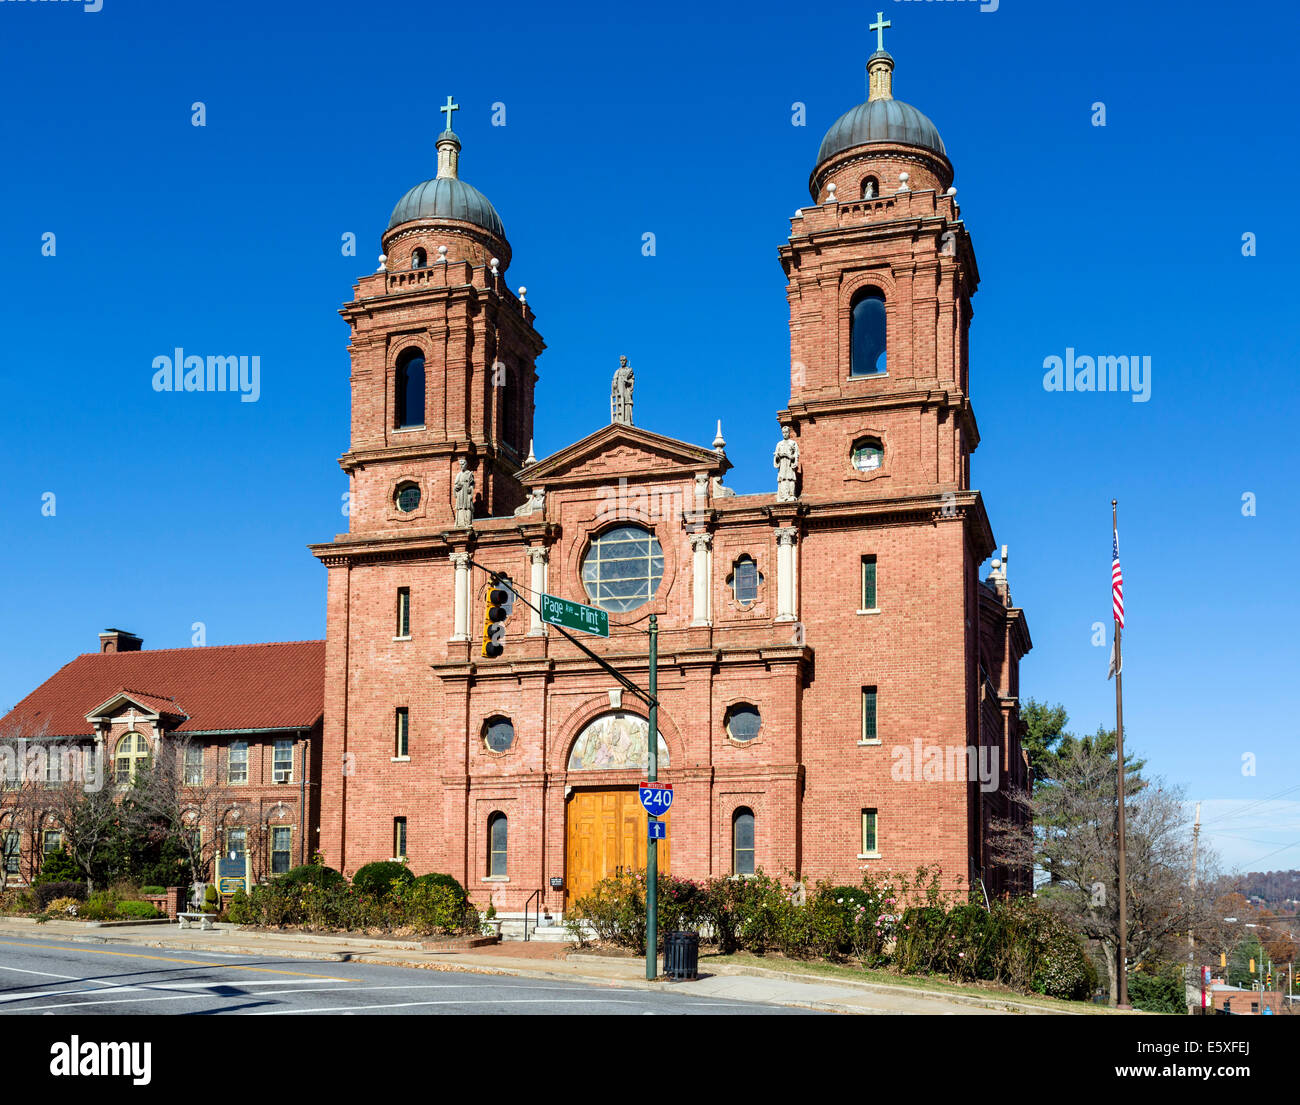 The Basilica of St Lawrence on Haywood Street in downtown Asheville, North Carolina, USA - Stock Image